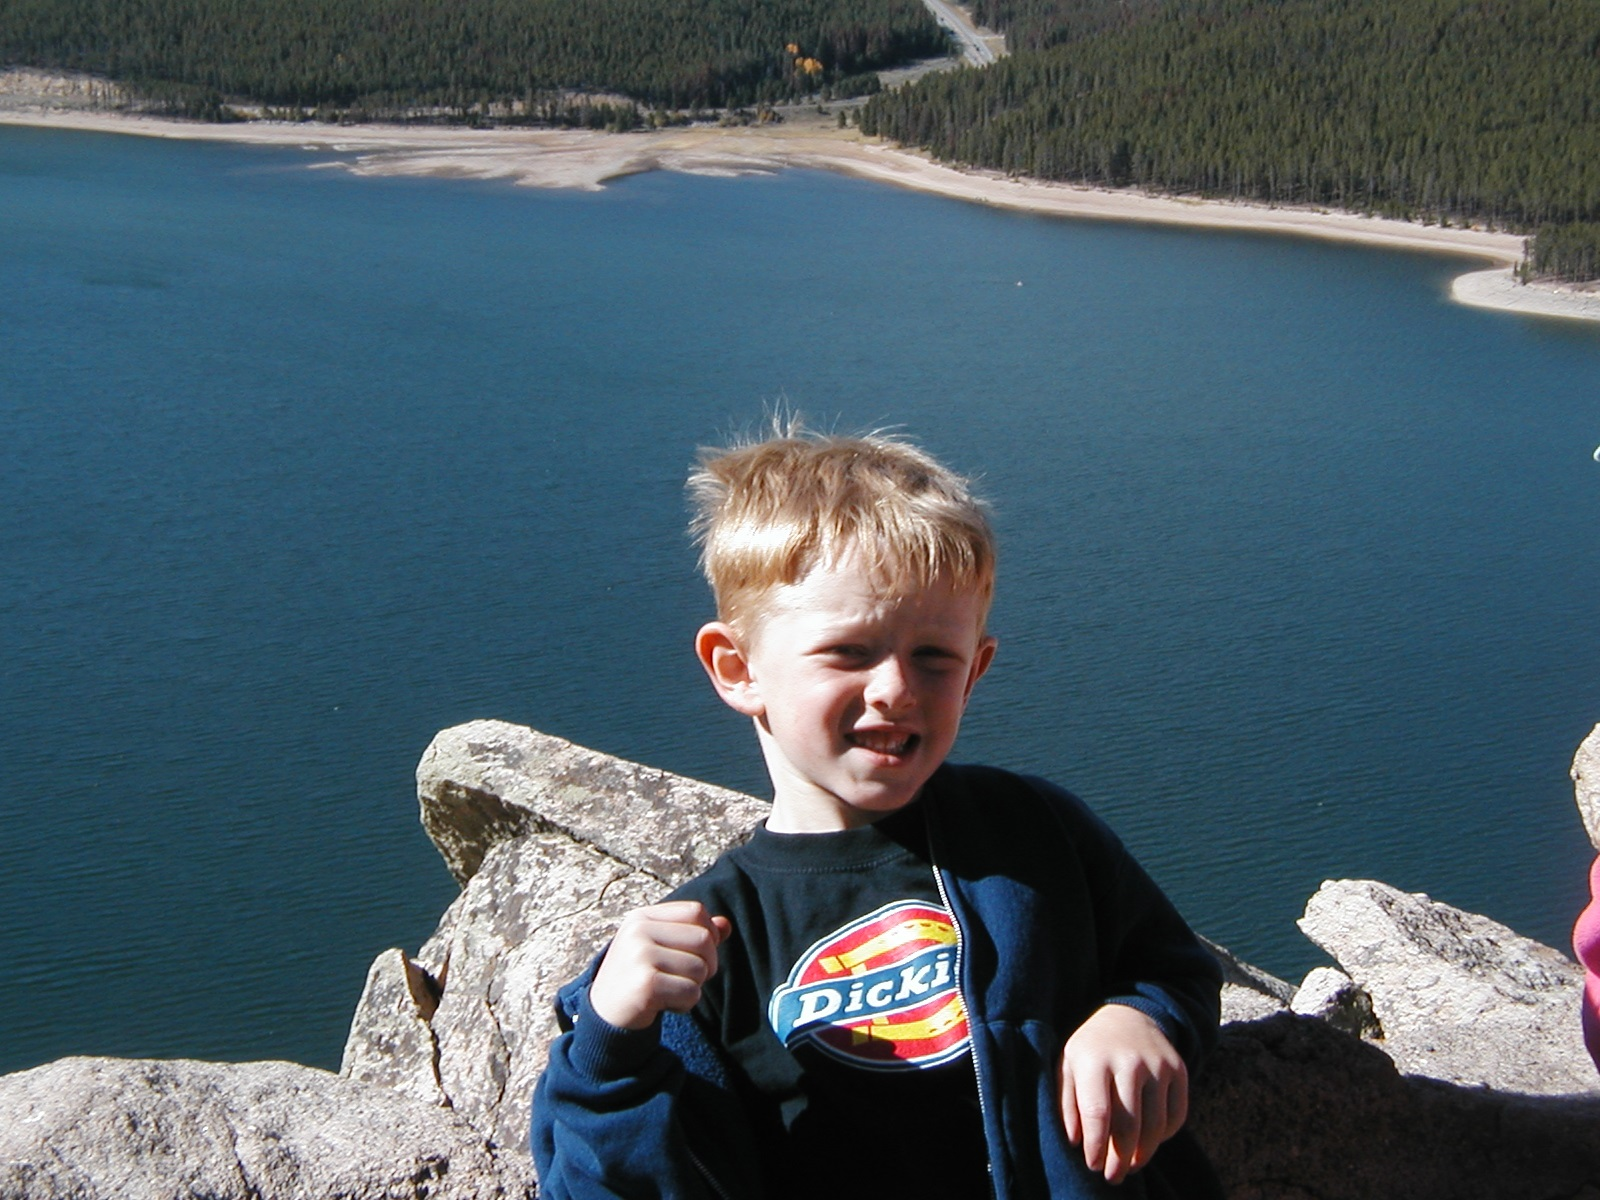 5 year old Jack. Hadn't lost a tooth yet...had a baby sister he wasn't too thrilled about. Loved to climb the incline with his grandpa.